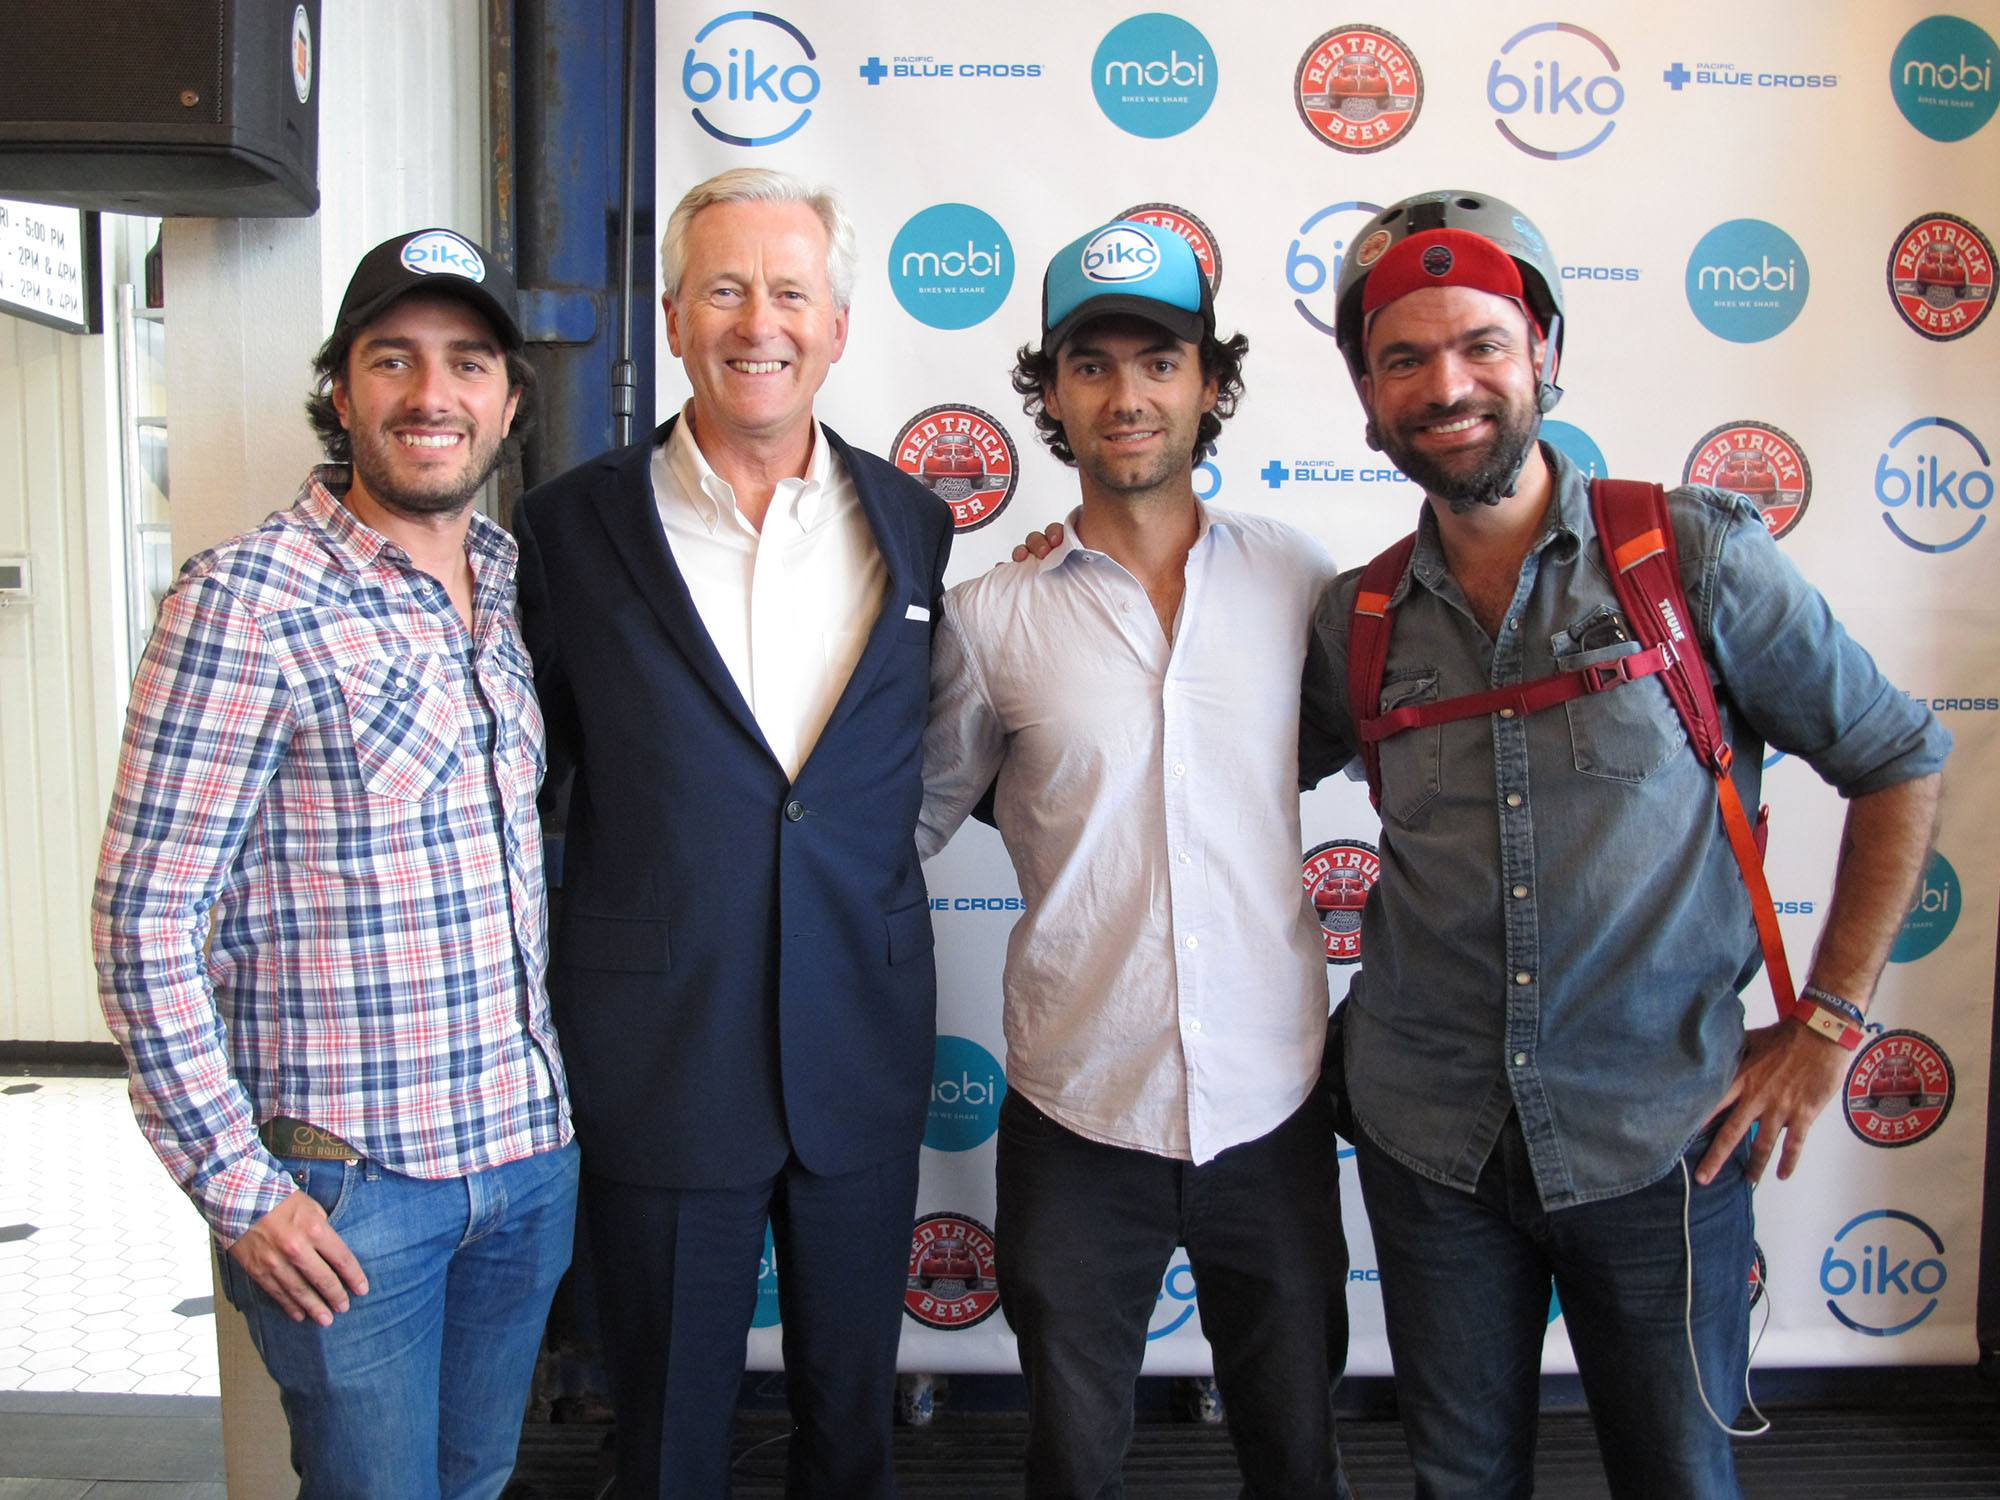 Left to right, Biko app co-founder Enrique Cuellar, Pacific Blue Cross CEO Jan K. Grude, and Biko app co-founders Emilio Pombo and Tomas Bleier (Biko/Pacific Blue Cross)